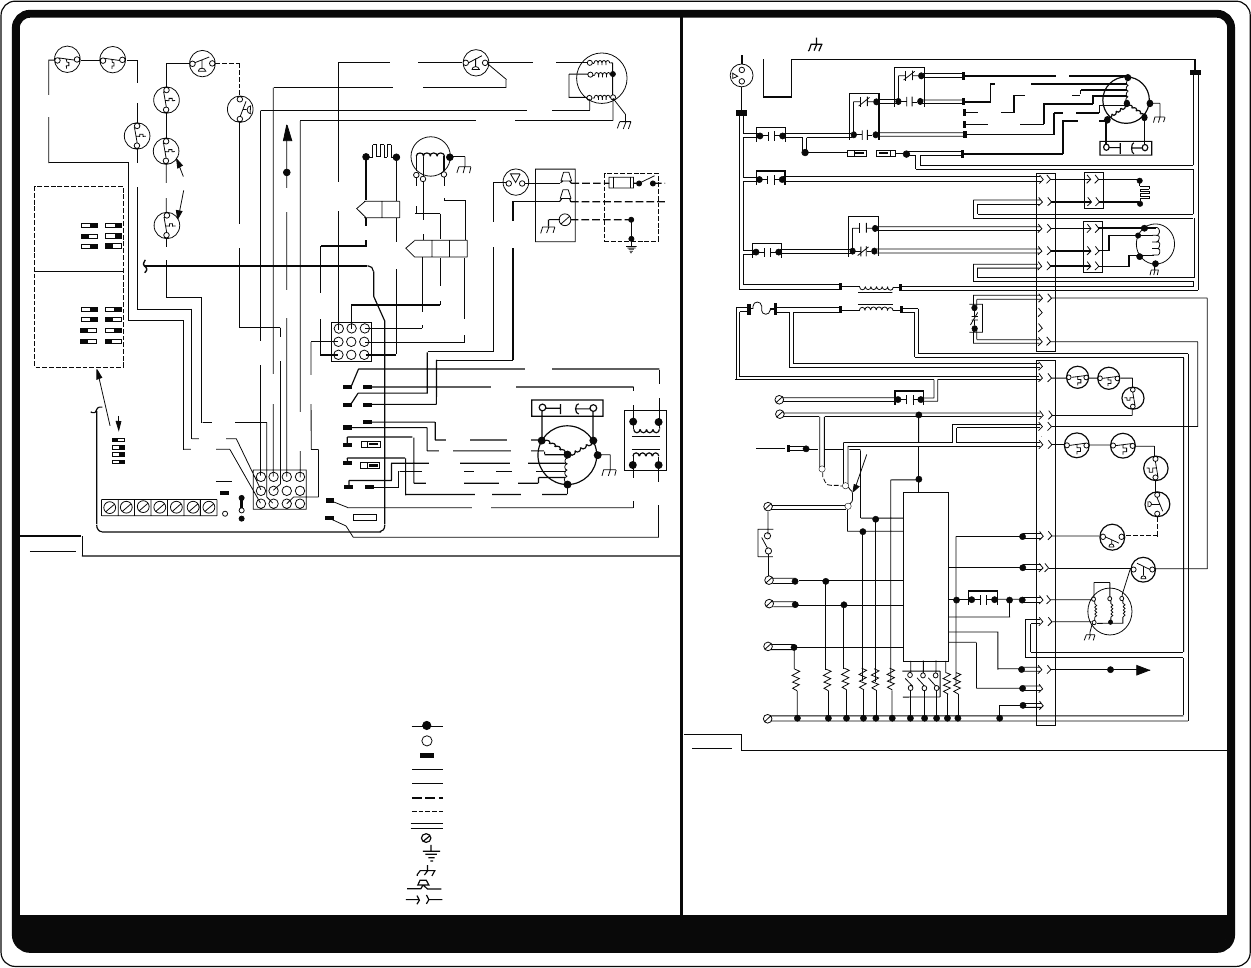 c2b73d22 c45f 43df a574 b6e707ea0cc7 bg8 power flame wiring diagram power flame burners wiring diagrams honeywell pressure switch wiring diagram at love-stories.co